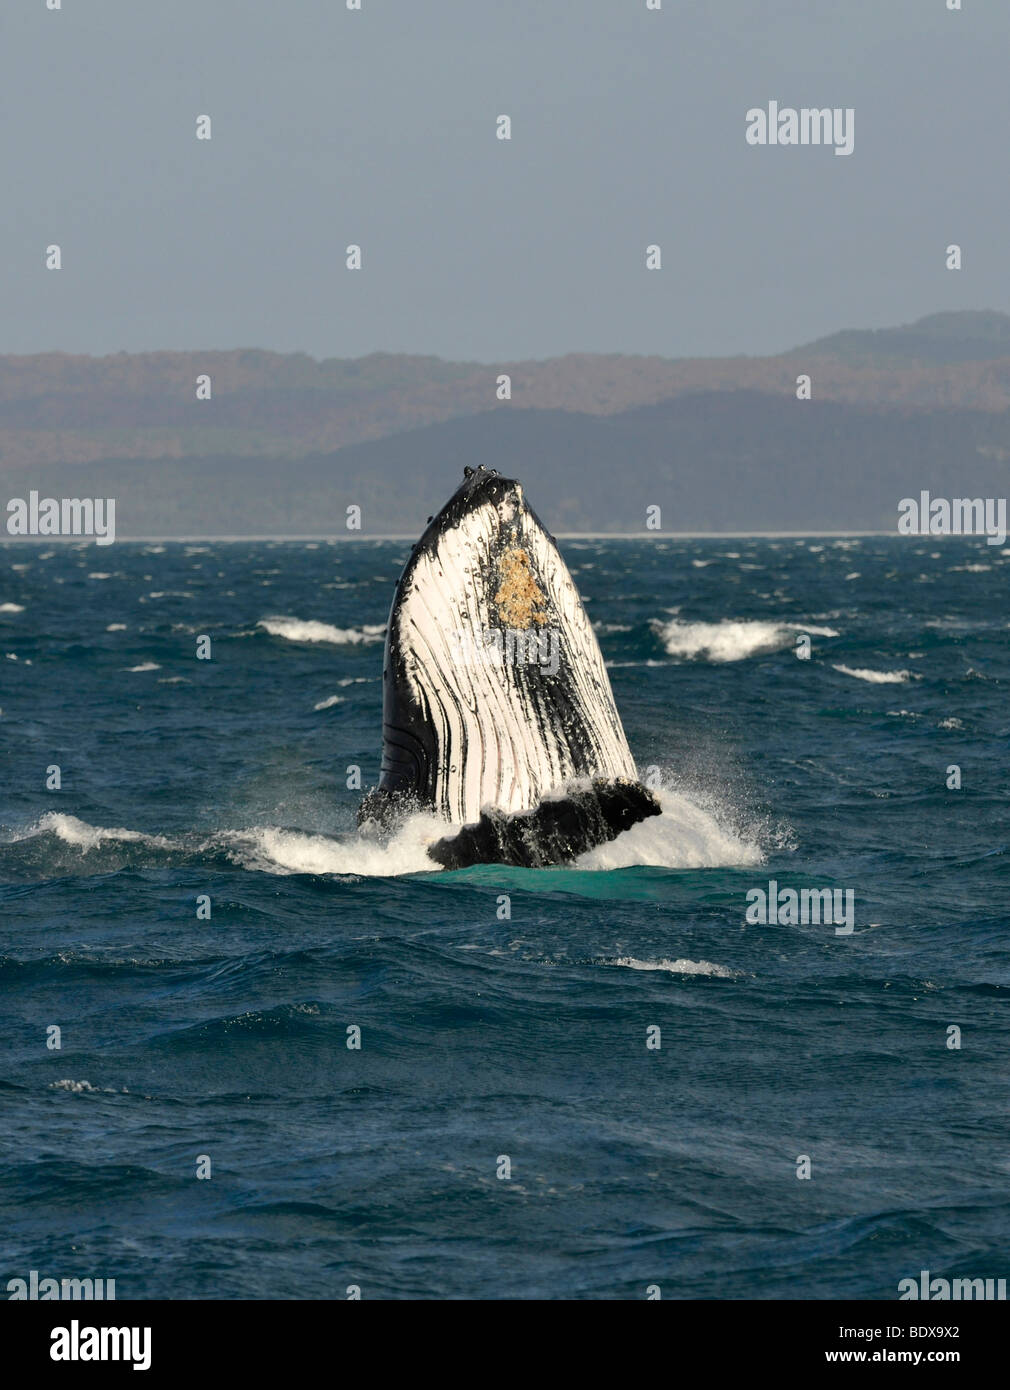 Species-specific spy hop, temporarily rising its head out of the water, of a Humpback Whale (Megaptera novaeangliae) Stock Photo